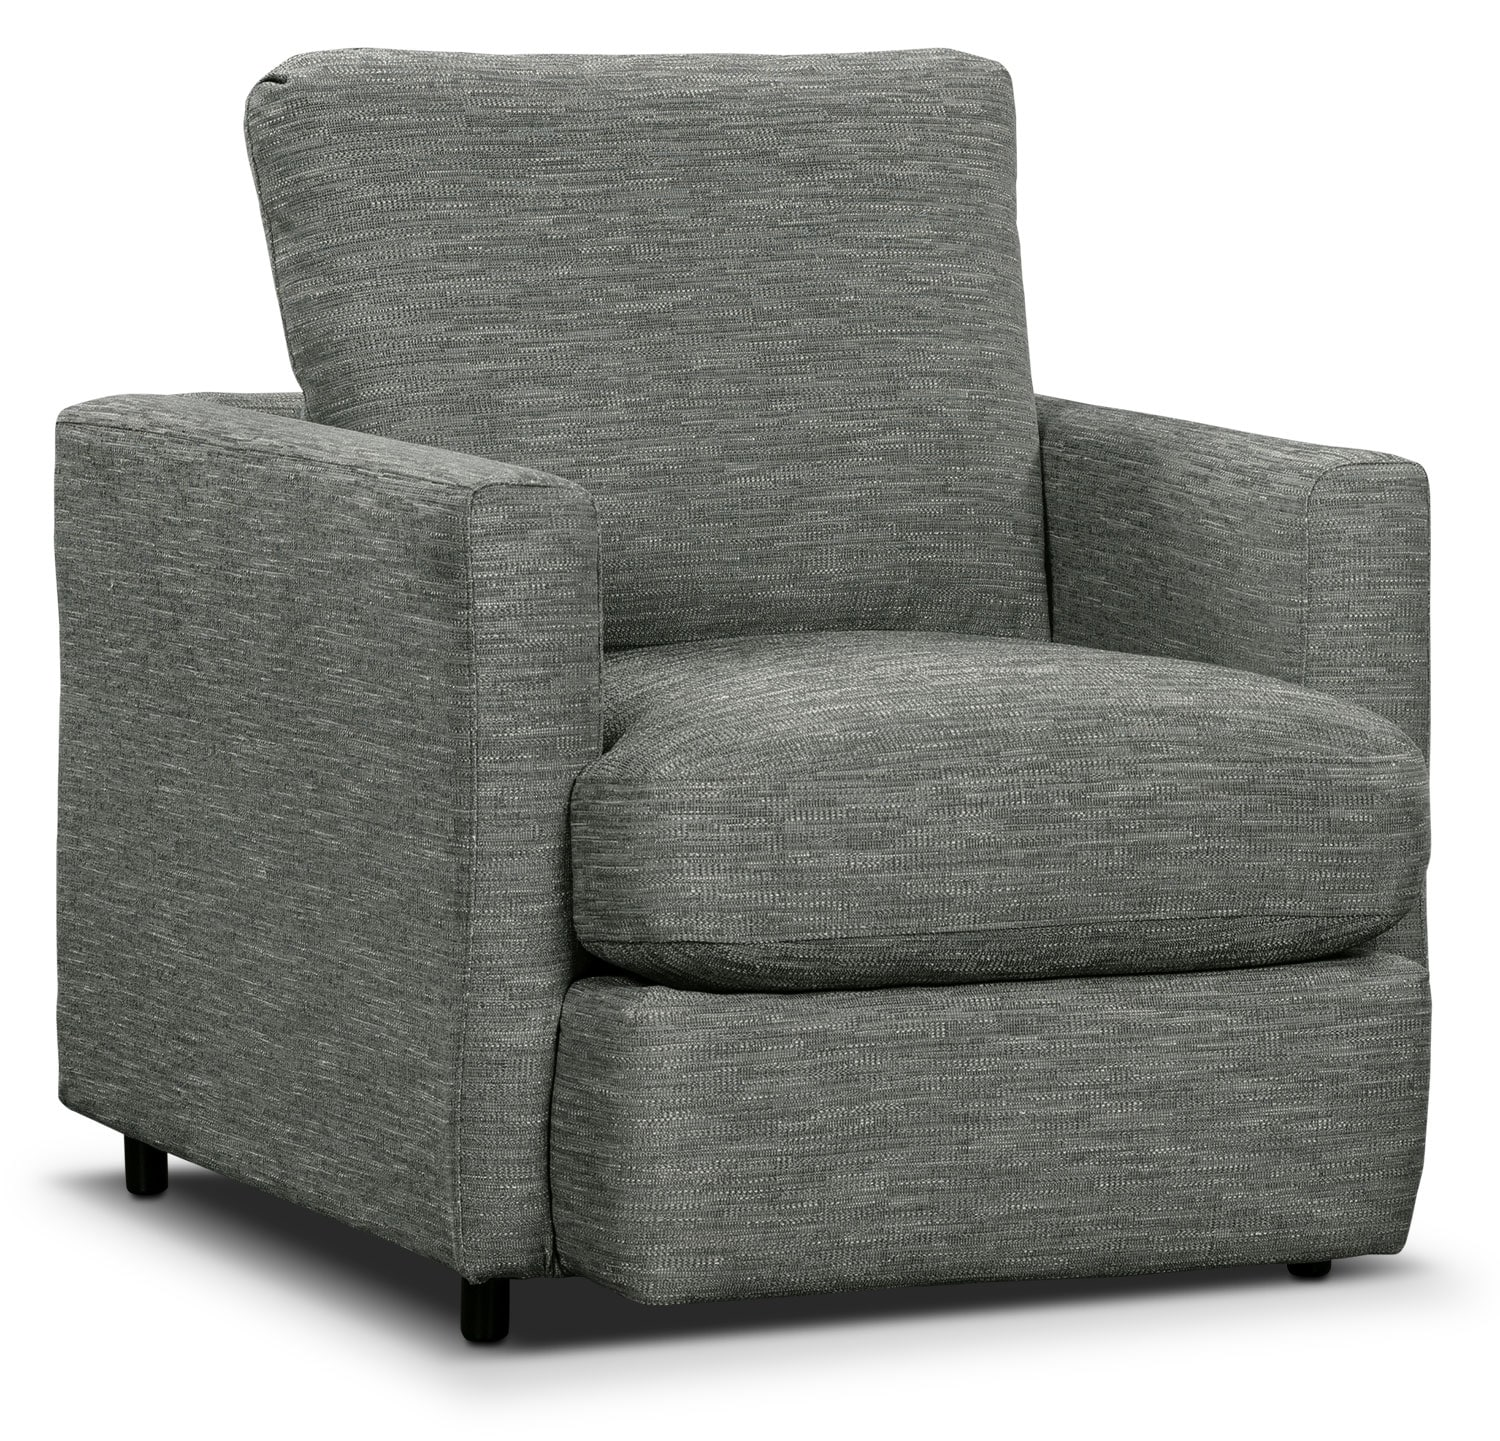 Living Room Furniture - Urbana Chenille Studio-Size Chair - Dark Grey